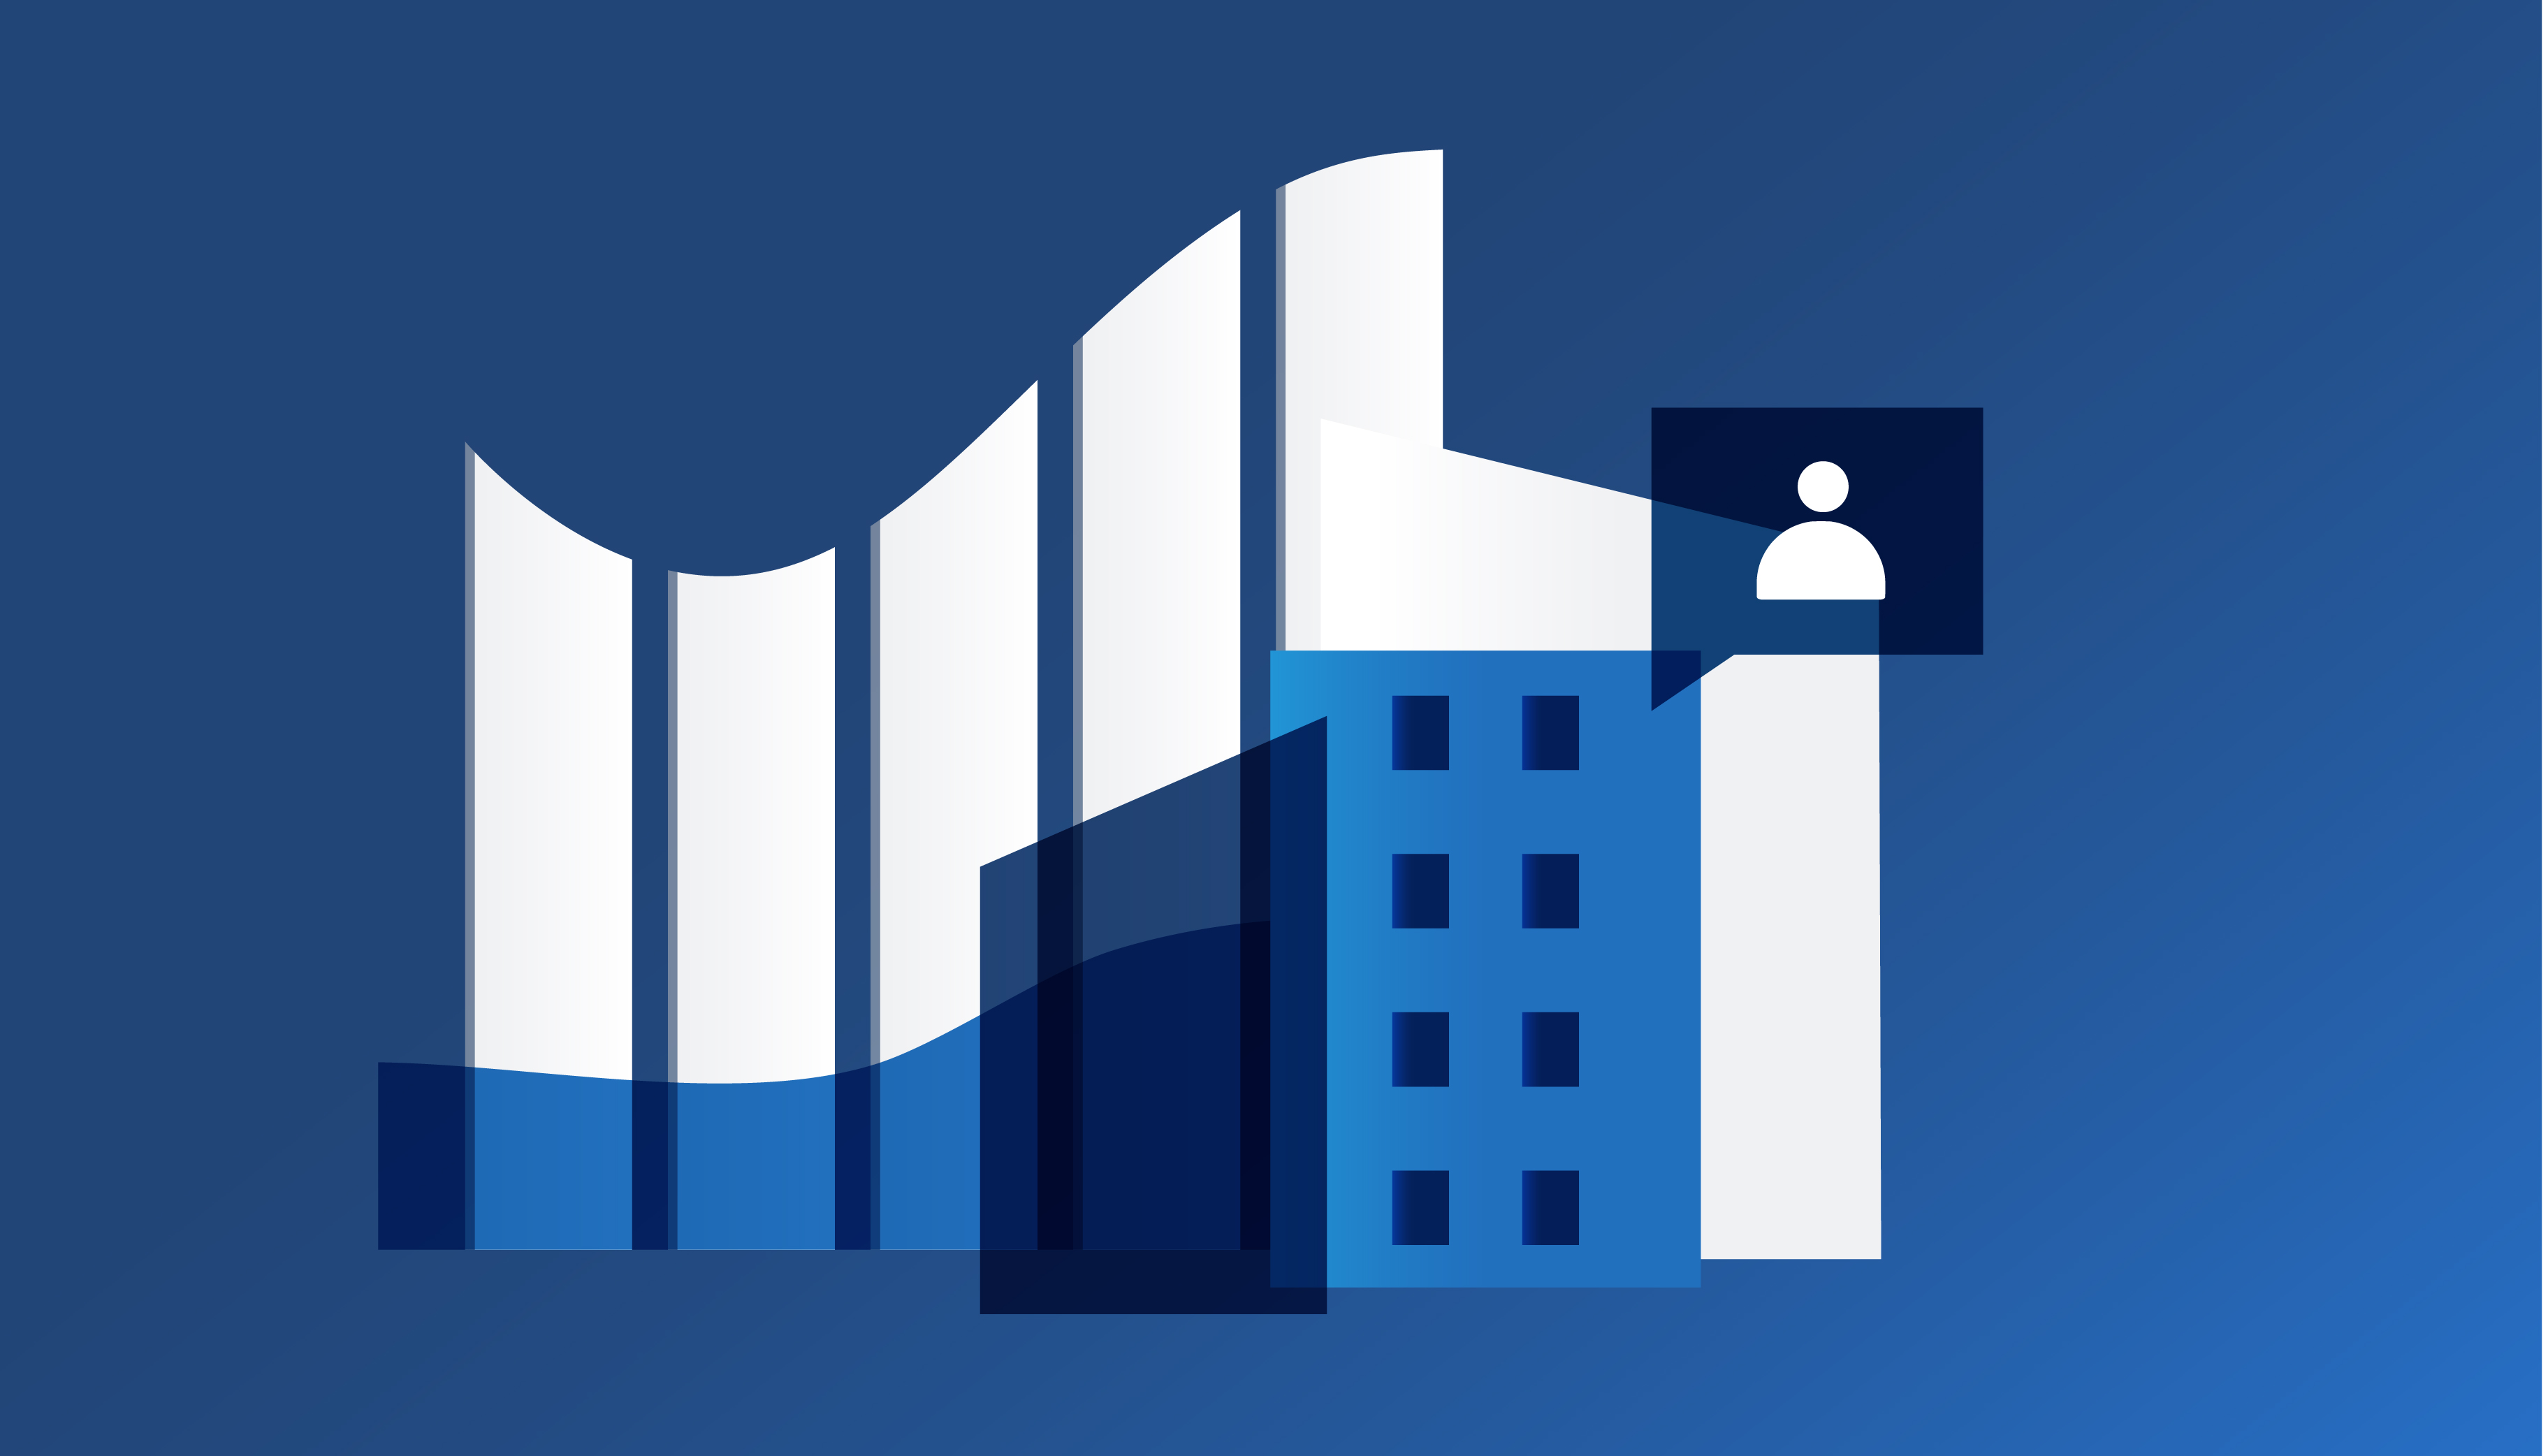 Two blue buildings and an icon of a person in front of a bar chart graphic representing growth from left to right.